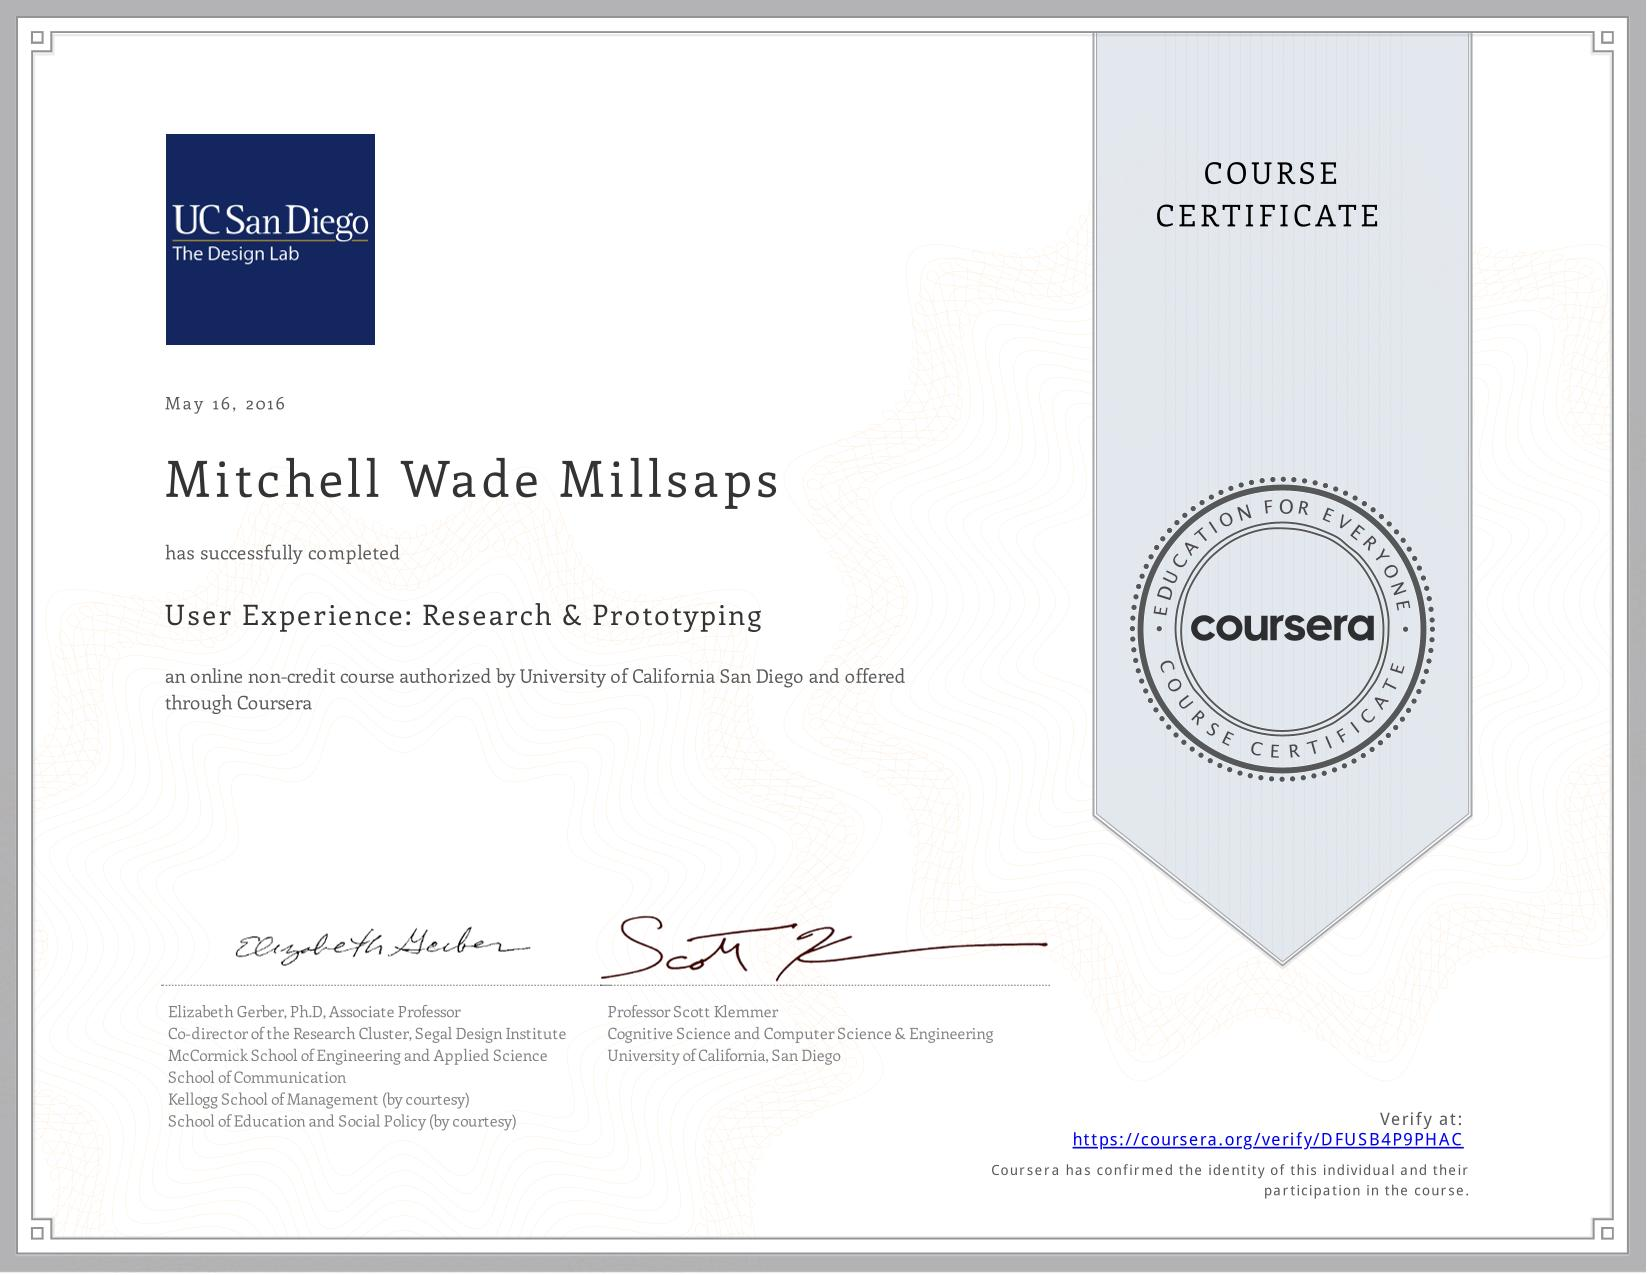 View certificate for Mitchell Wade Millsaps, User Experience: Research & Prototyping, an online non-credit course authorized by  & University of California San Diego and offered through Coursera